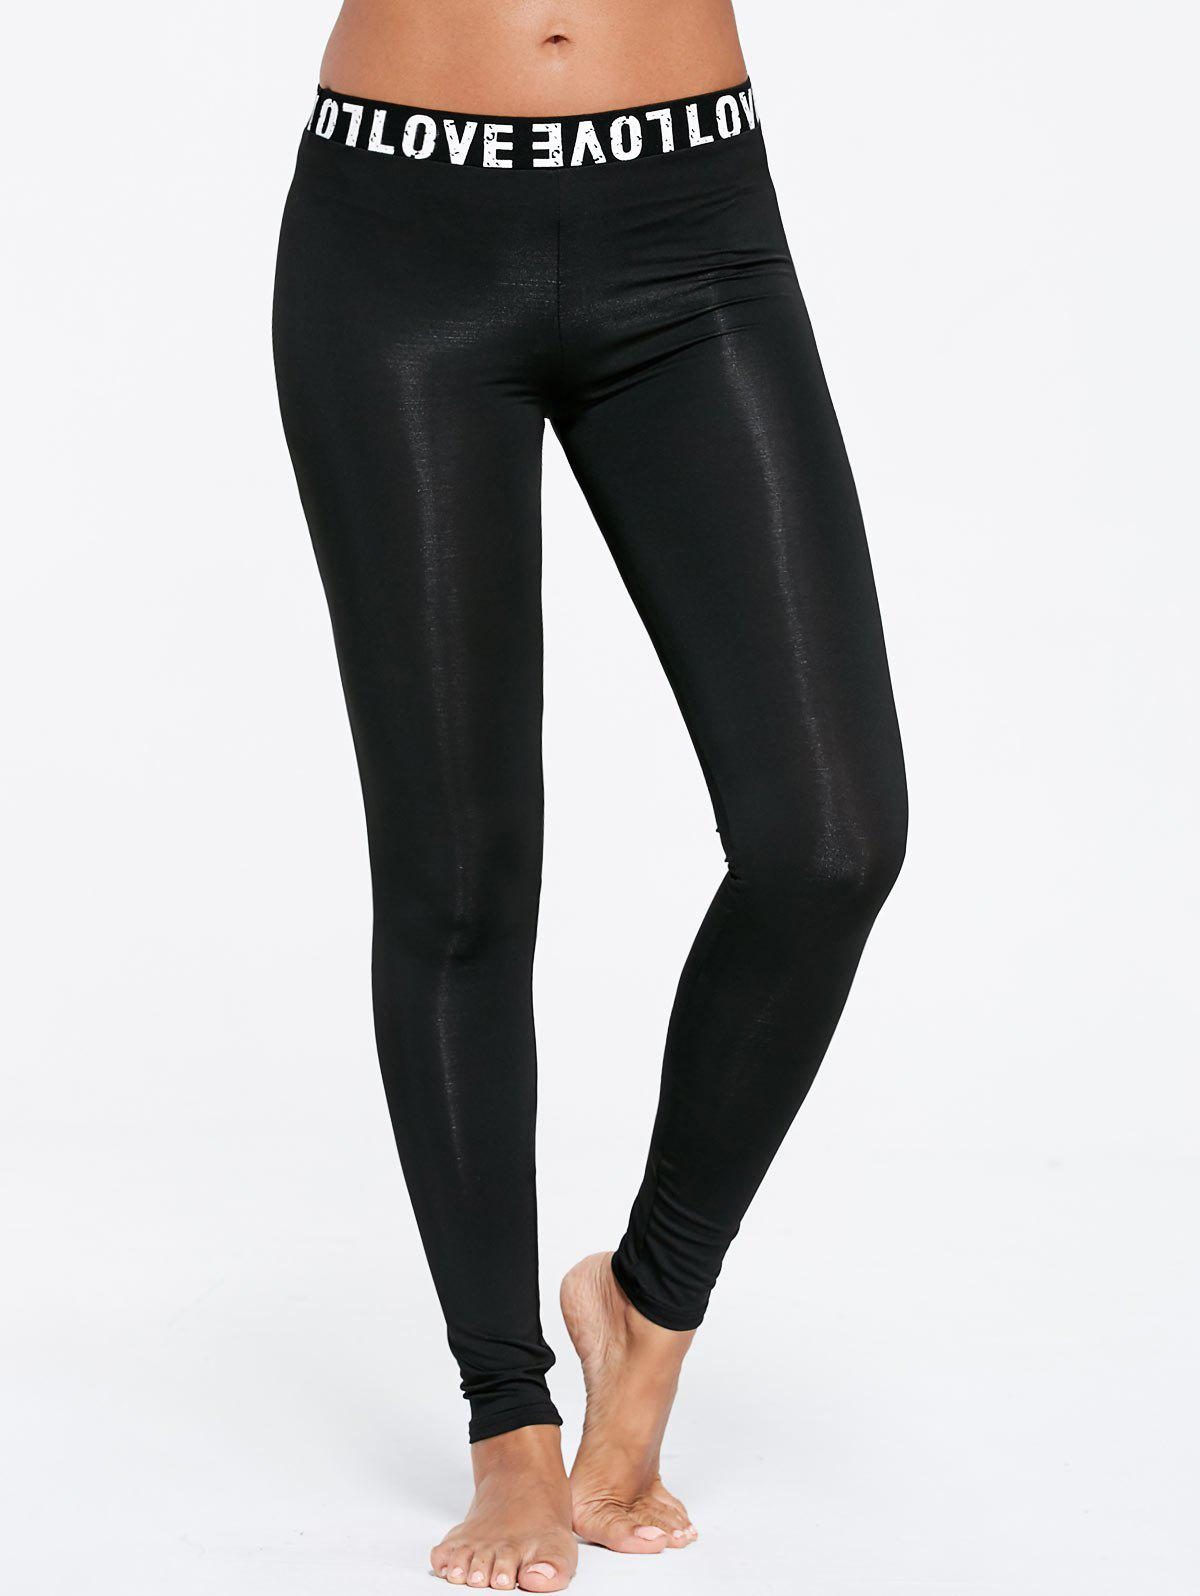 Love Trim Sports Tall Leggings - Noir L